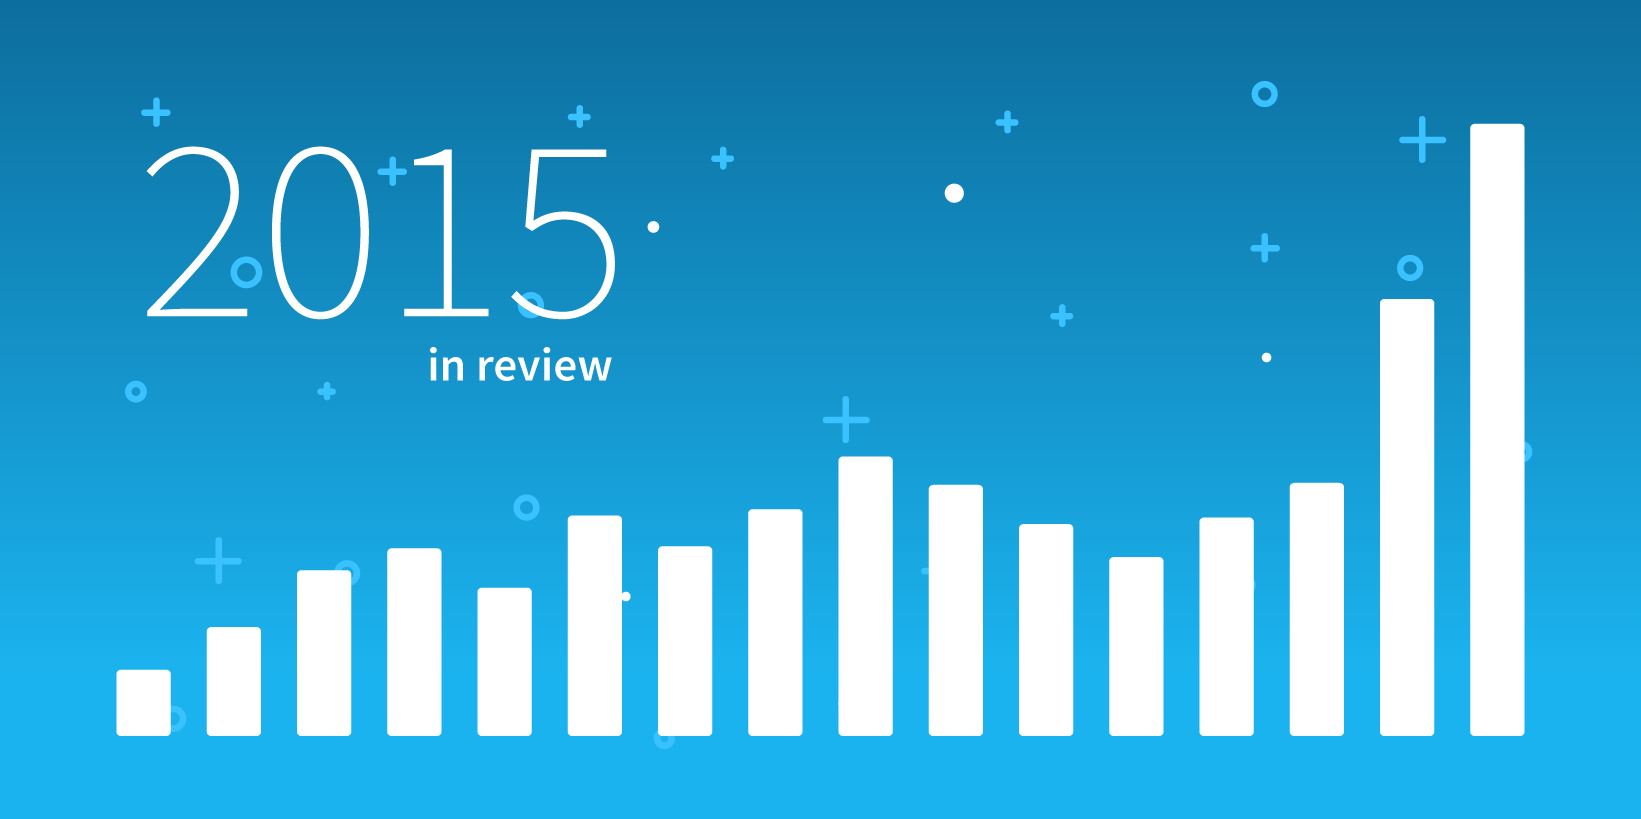 Most common UX practices for 2015